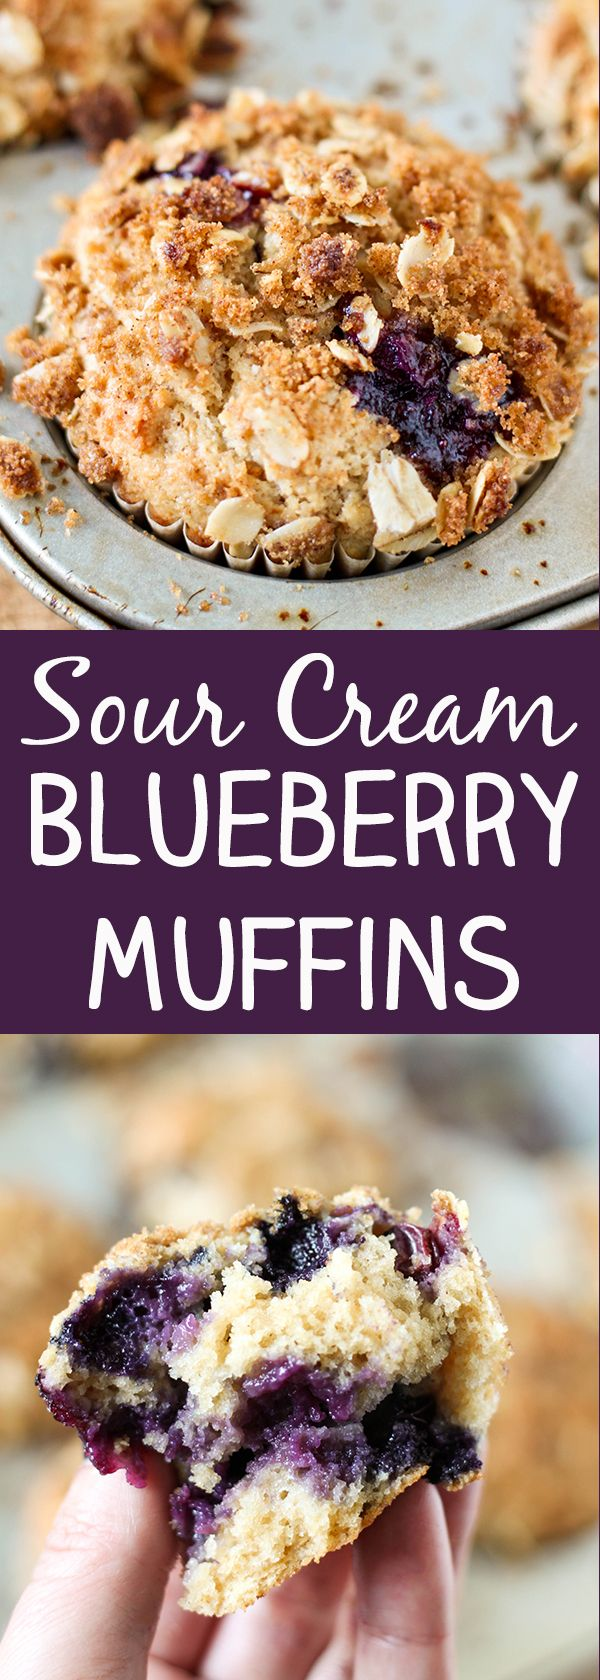 Sour Cream Blueberry Muffins - these wholesome muffins are packed with fresh blueberries, whole wheat flour, reduced fat sour cream and a crunchy oatmeal streusel!